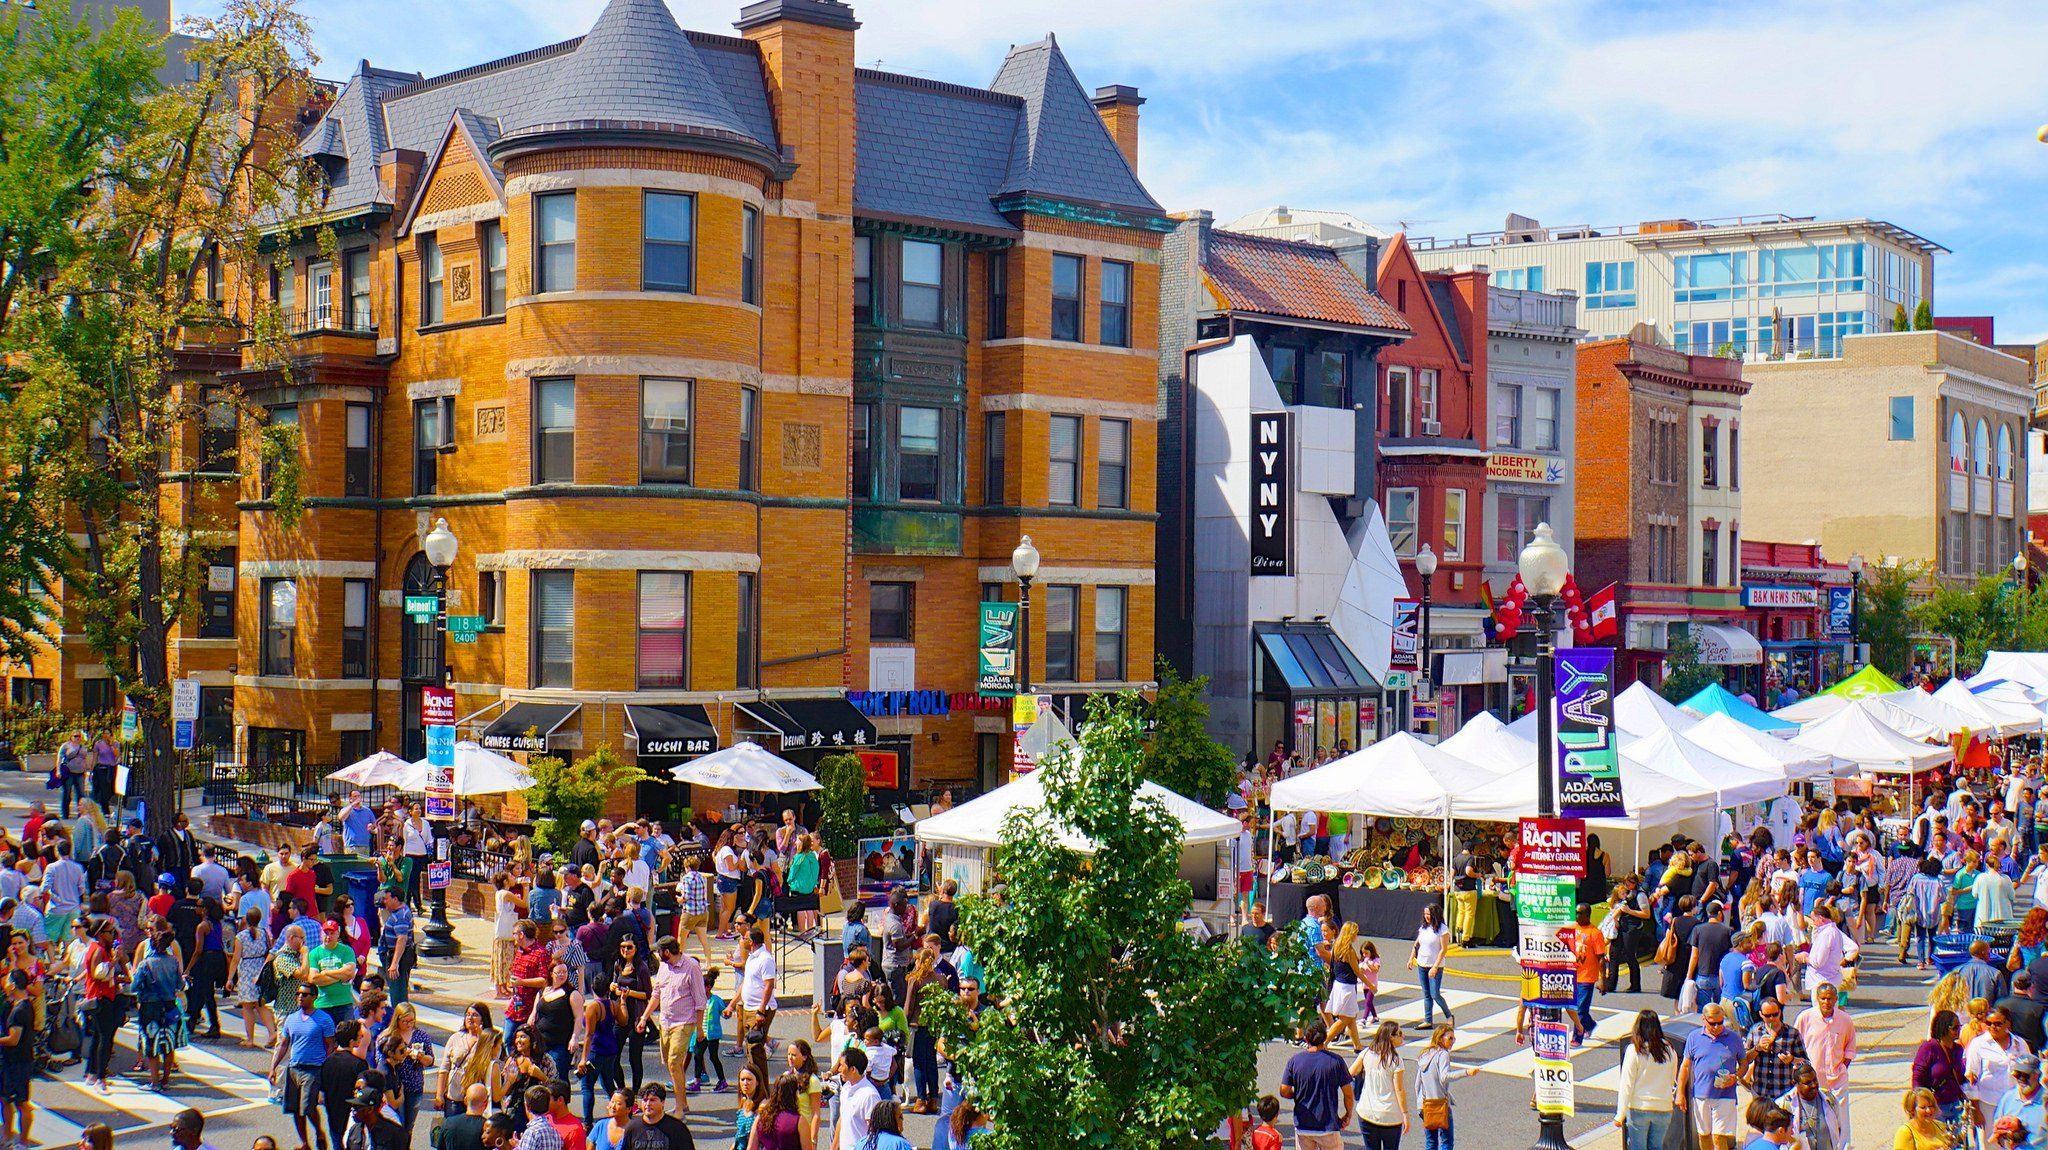 Here Are The 10 Best Places To Live In Washington Dc And Why With Images Living In Washington Dc Washington Dc Travel Washington Dc